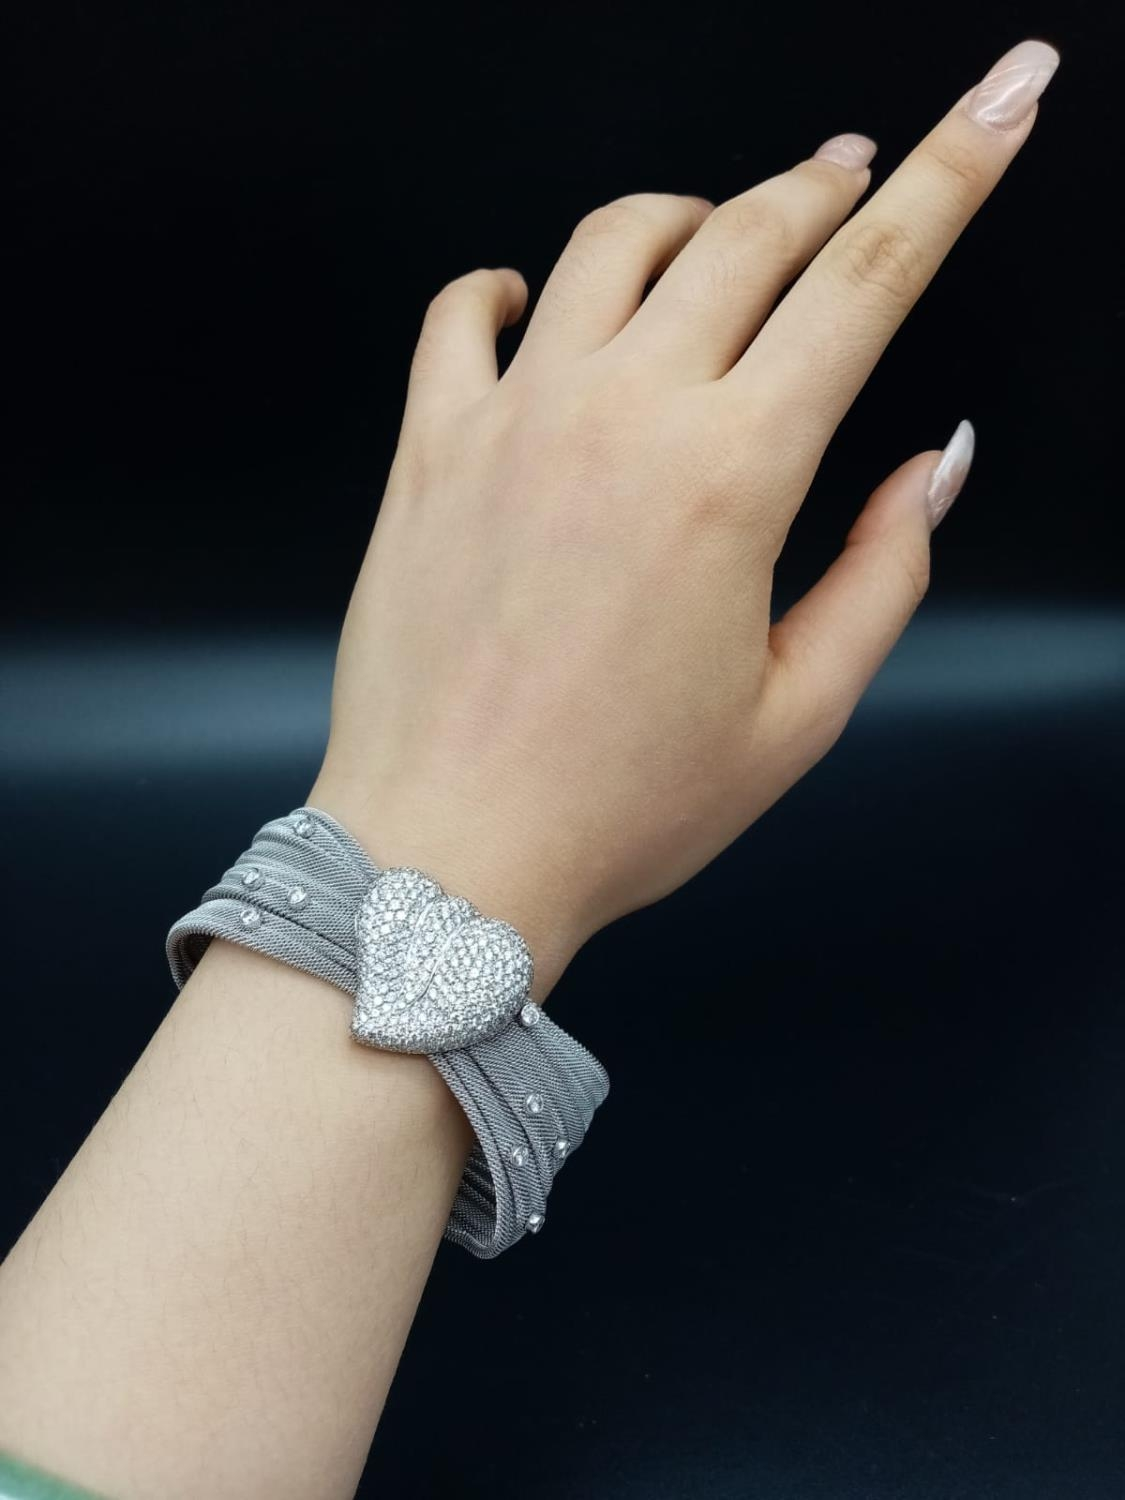 an 18k white gold bracelet with 10 diamonds and a diamond encrusted heart. 53.4gms 19cms - Image 8 of 10